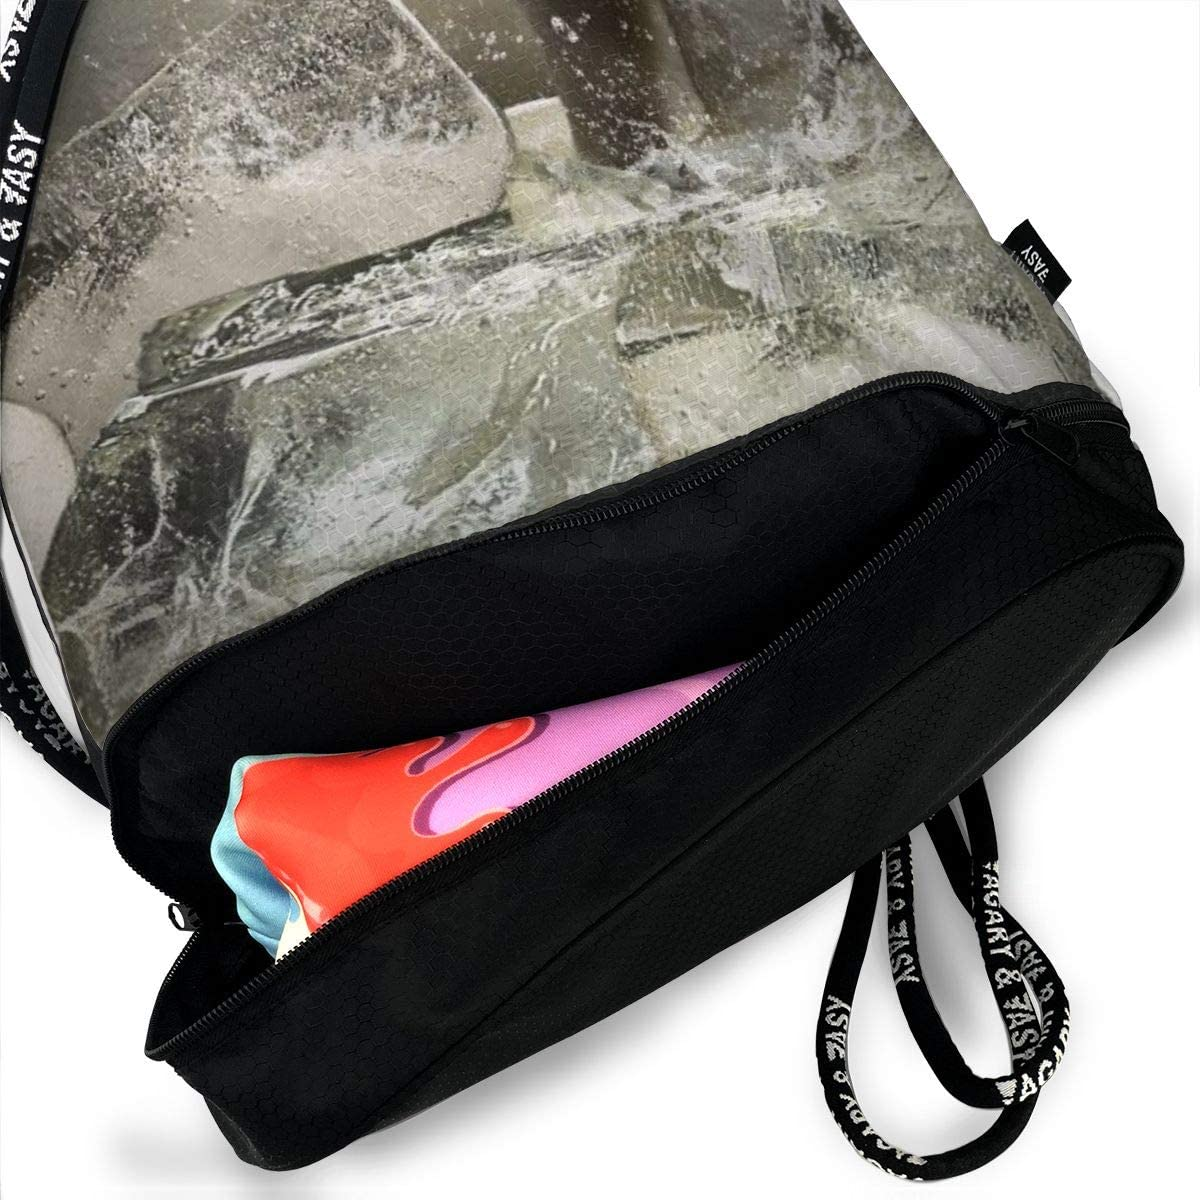 GymSack Drawstring Bag Sackpack Polar Bear Ice Sport Cinch Pack Simple Bundle Pocke Backpack For Men Women